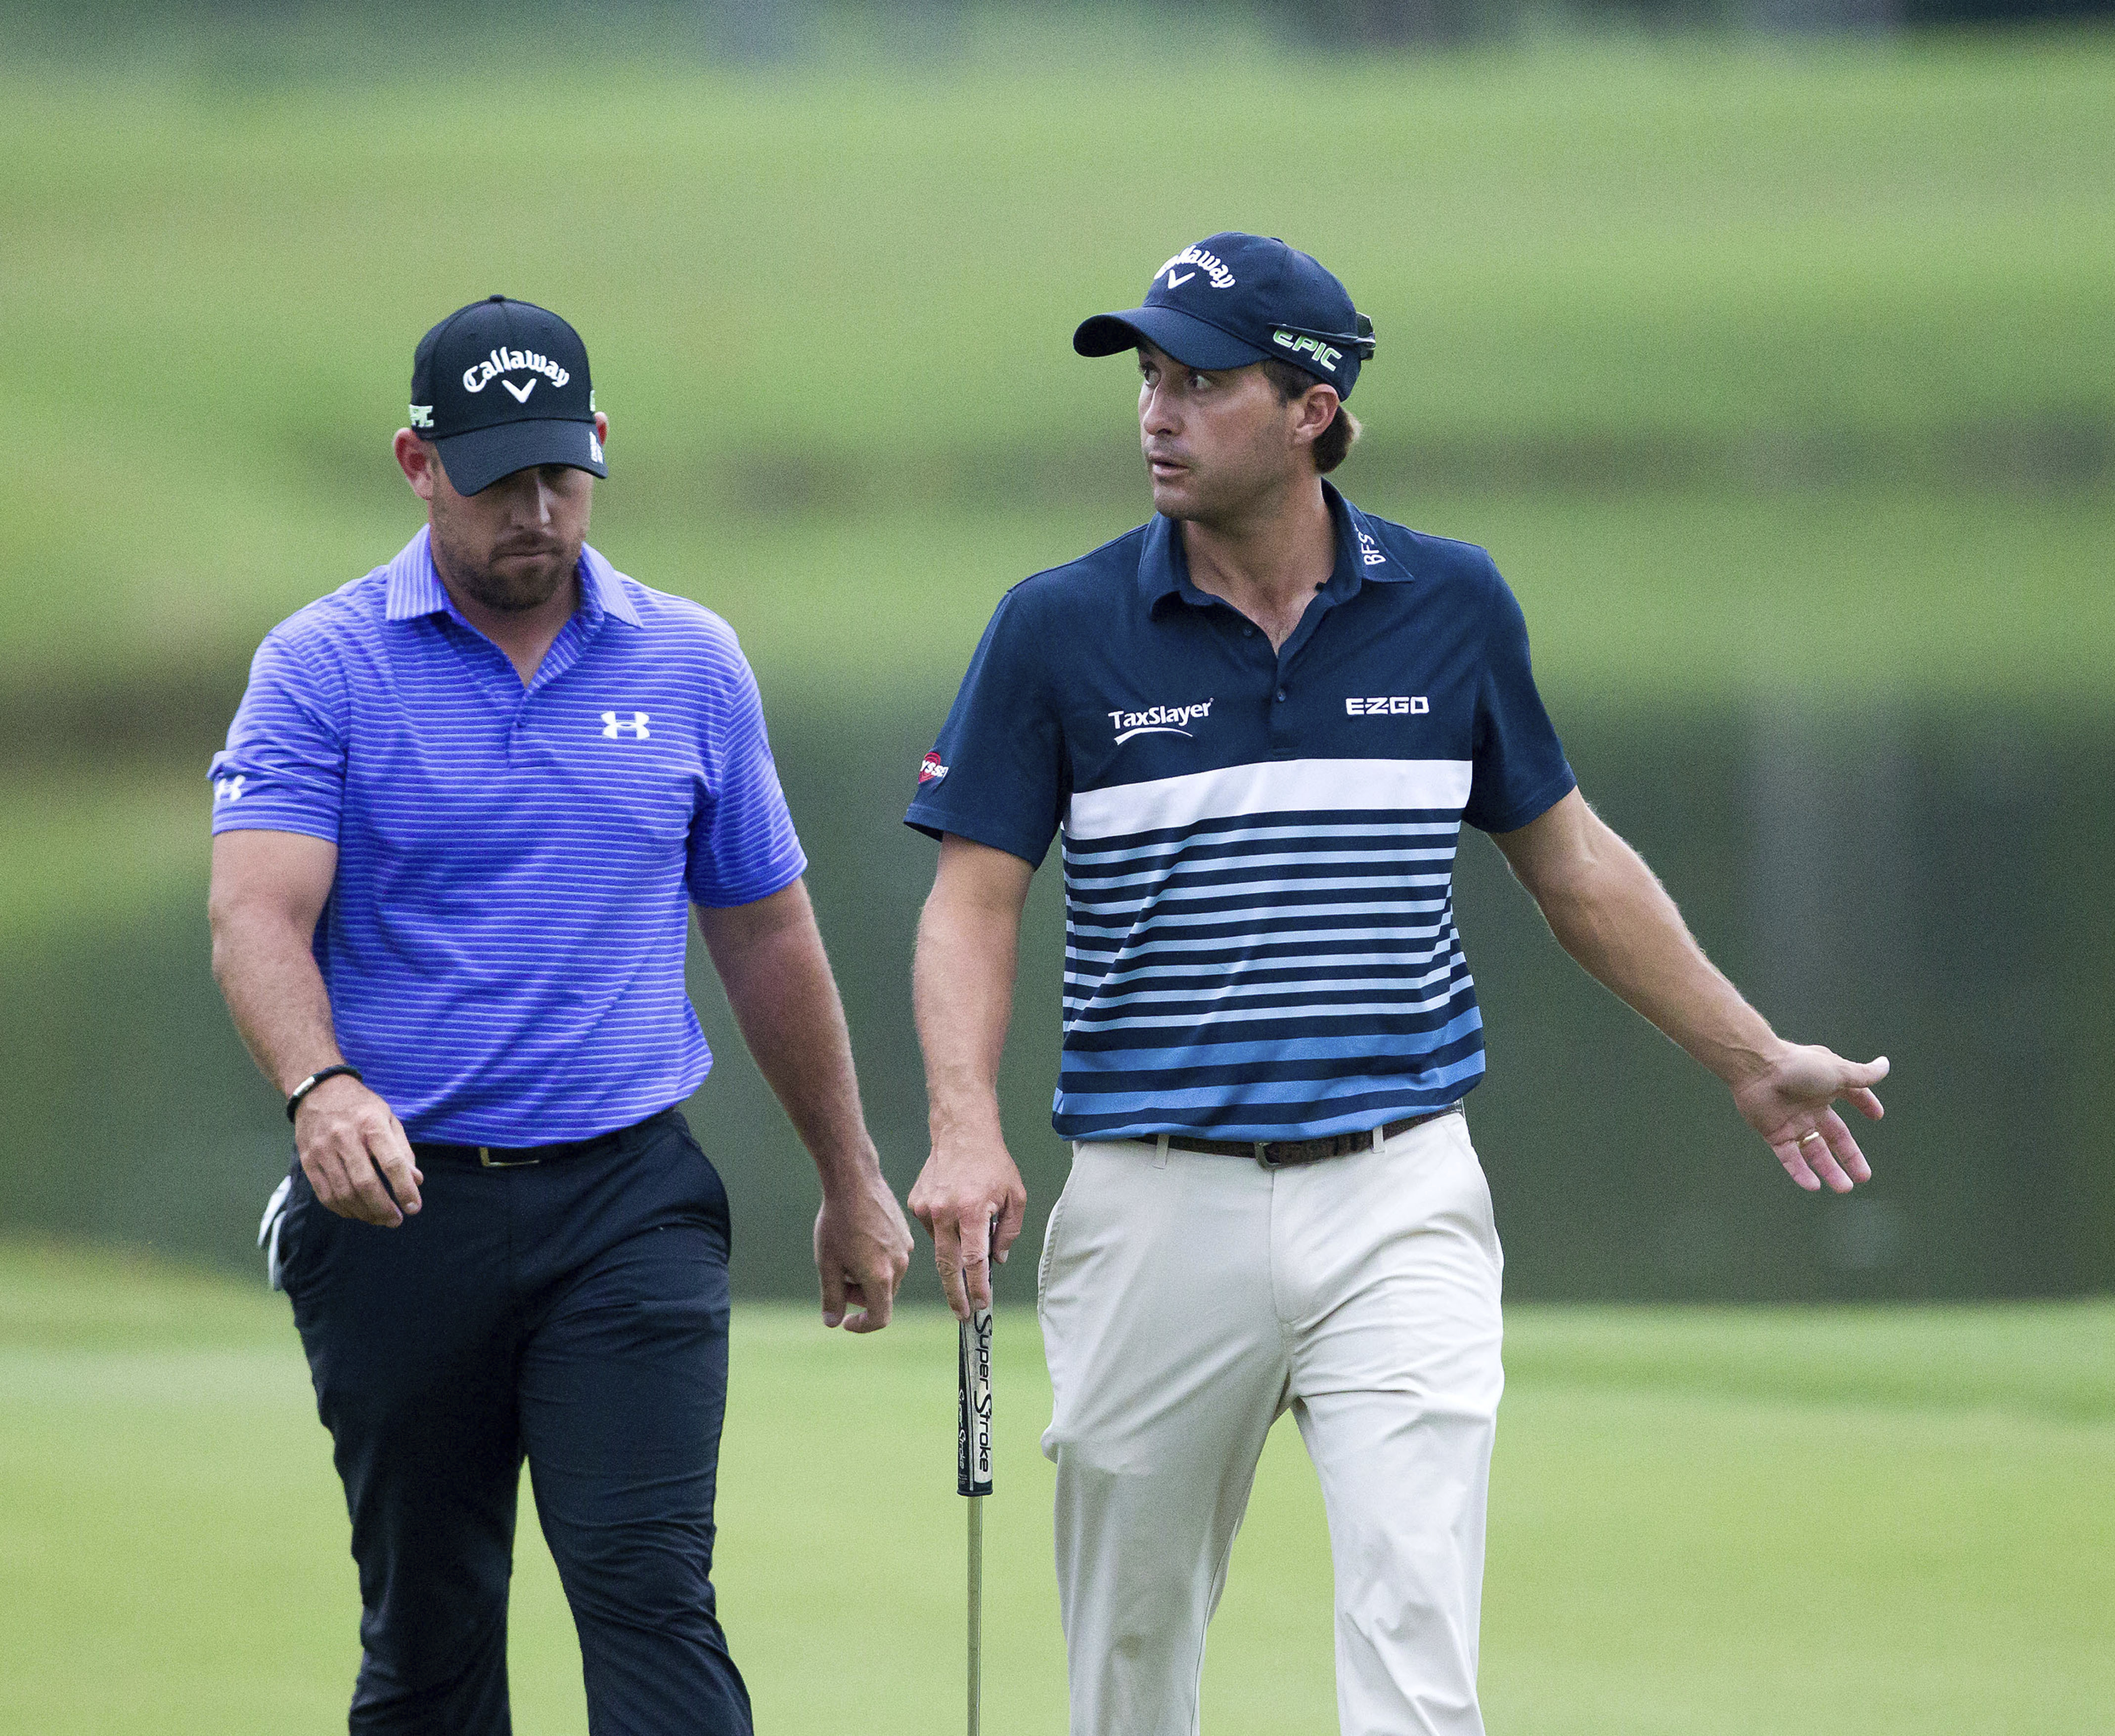 Teammates Scott Brown, left, and Kevin Kisner leave the 17th green with par during the final round of the PGA Zurich Classic golf tournament's new two-man team format at TPC Louisiana in Avondale, La., Sunday, April 30, 2017. (AP Photo/Scott Threlkeld)